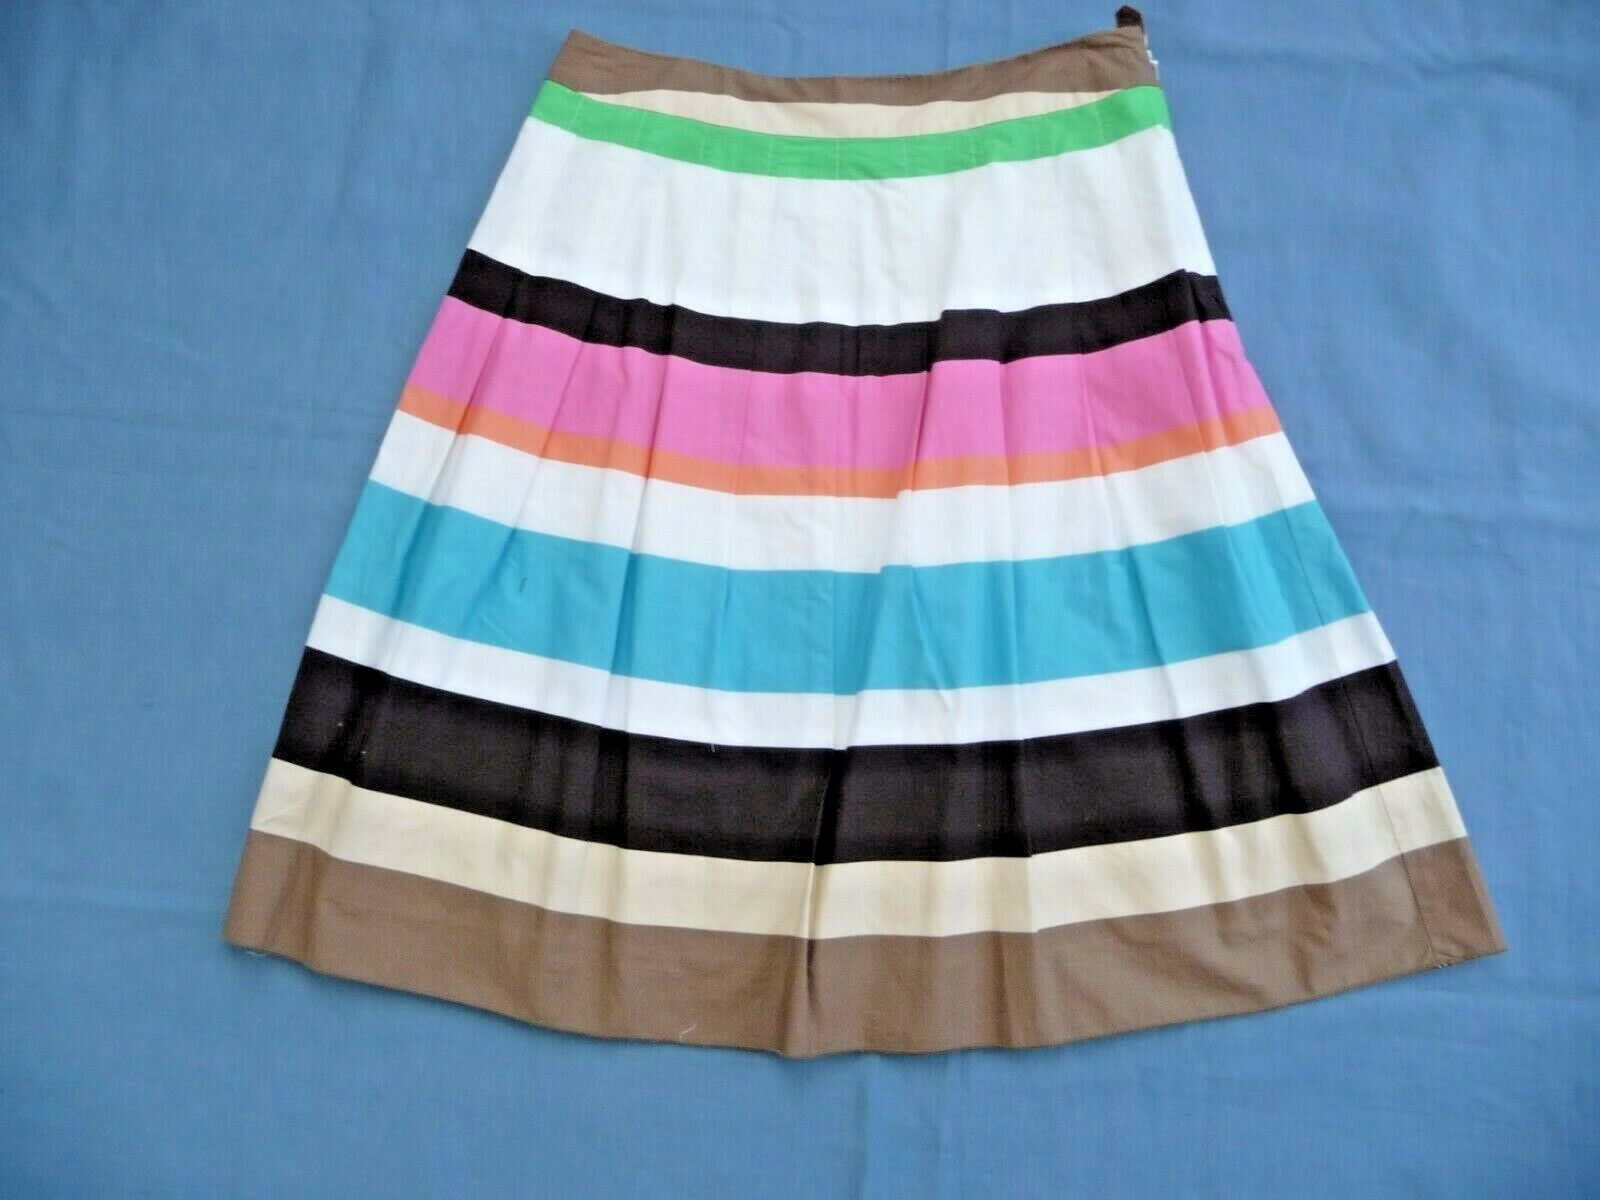 Talbots NWT 8P Skirt 100% Cotton Lined Pleated White w  Bright Stripes 23.5